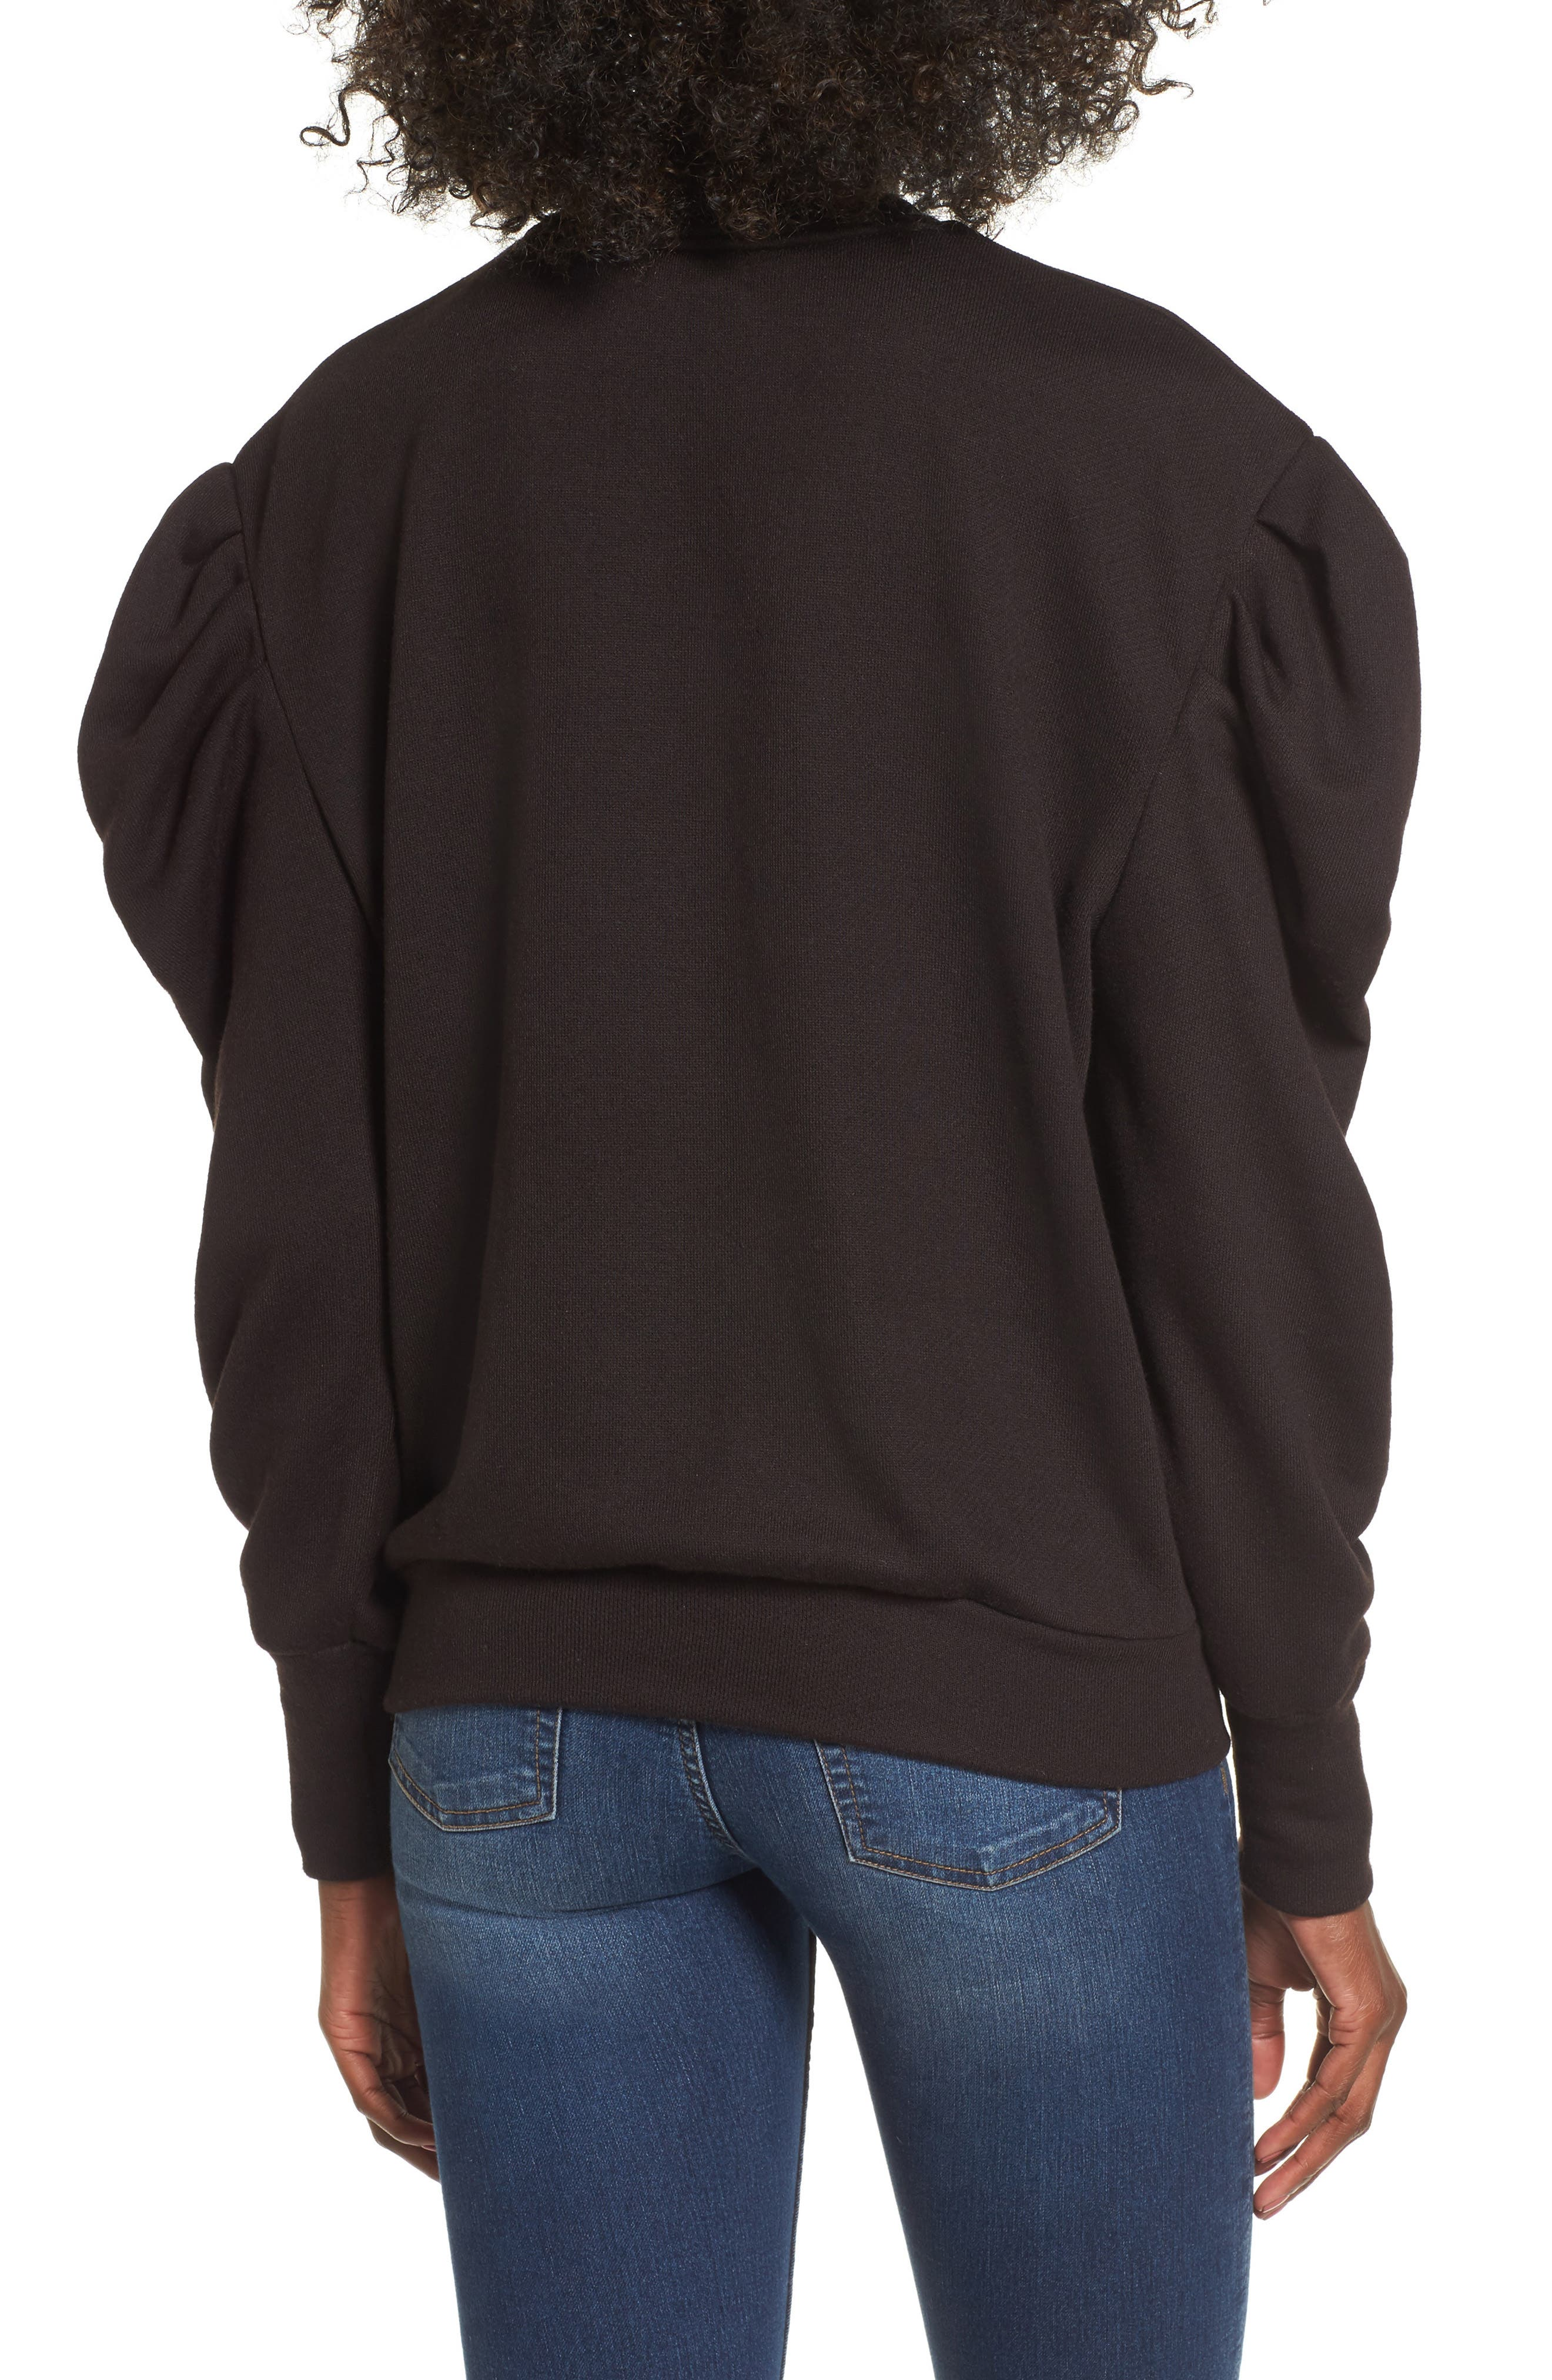 James Balloon Sleeve Sweatshirt,                             Alternate thumbnail 2, color,                             001